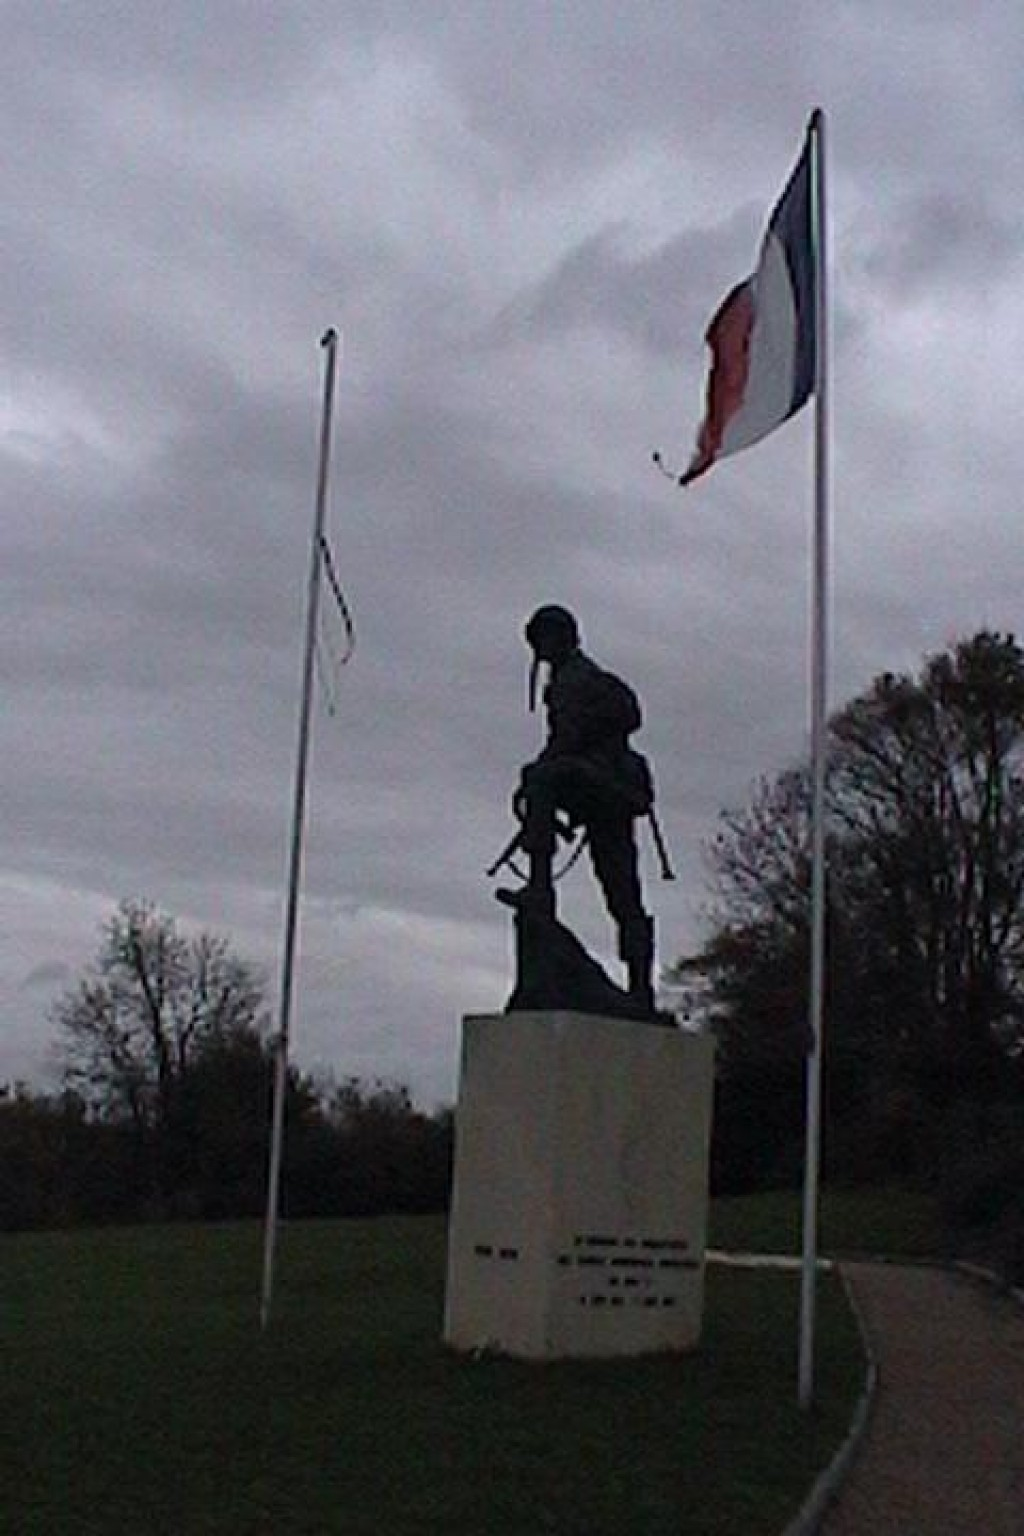 For Remembrance Day, we visited the D-Day Beaches in Normandy.  This is the memorial to the parachutists who landed near Sainte Mère-Église.  One of them got stuck on the church steeple and the locals risked their lives to give him a proper burial.